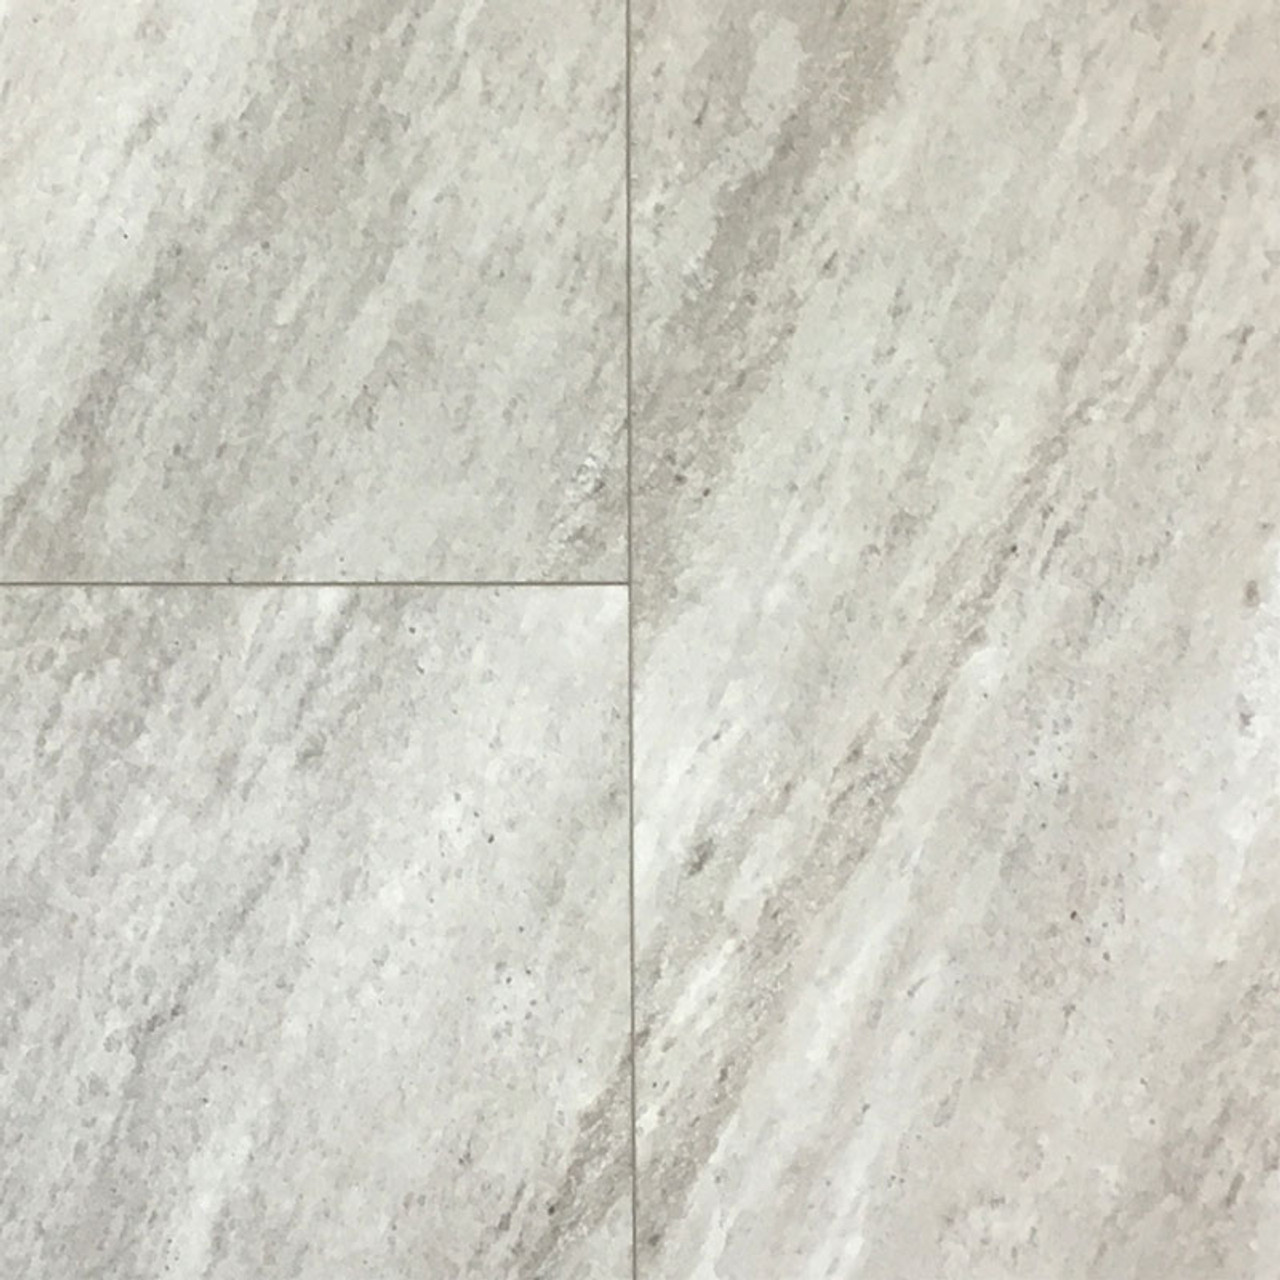 5.2mm Stonewear+ Silt Vinyl Click Flooring | Stone Product Core (SPC) | Includes 1mm Attached Underpad | 23.25 Sq.Ft. Per Box | Sold by the Box